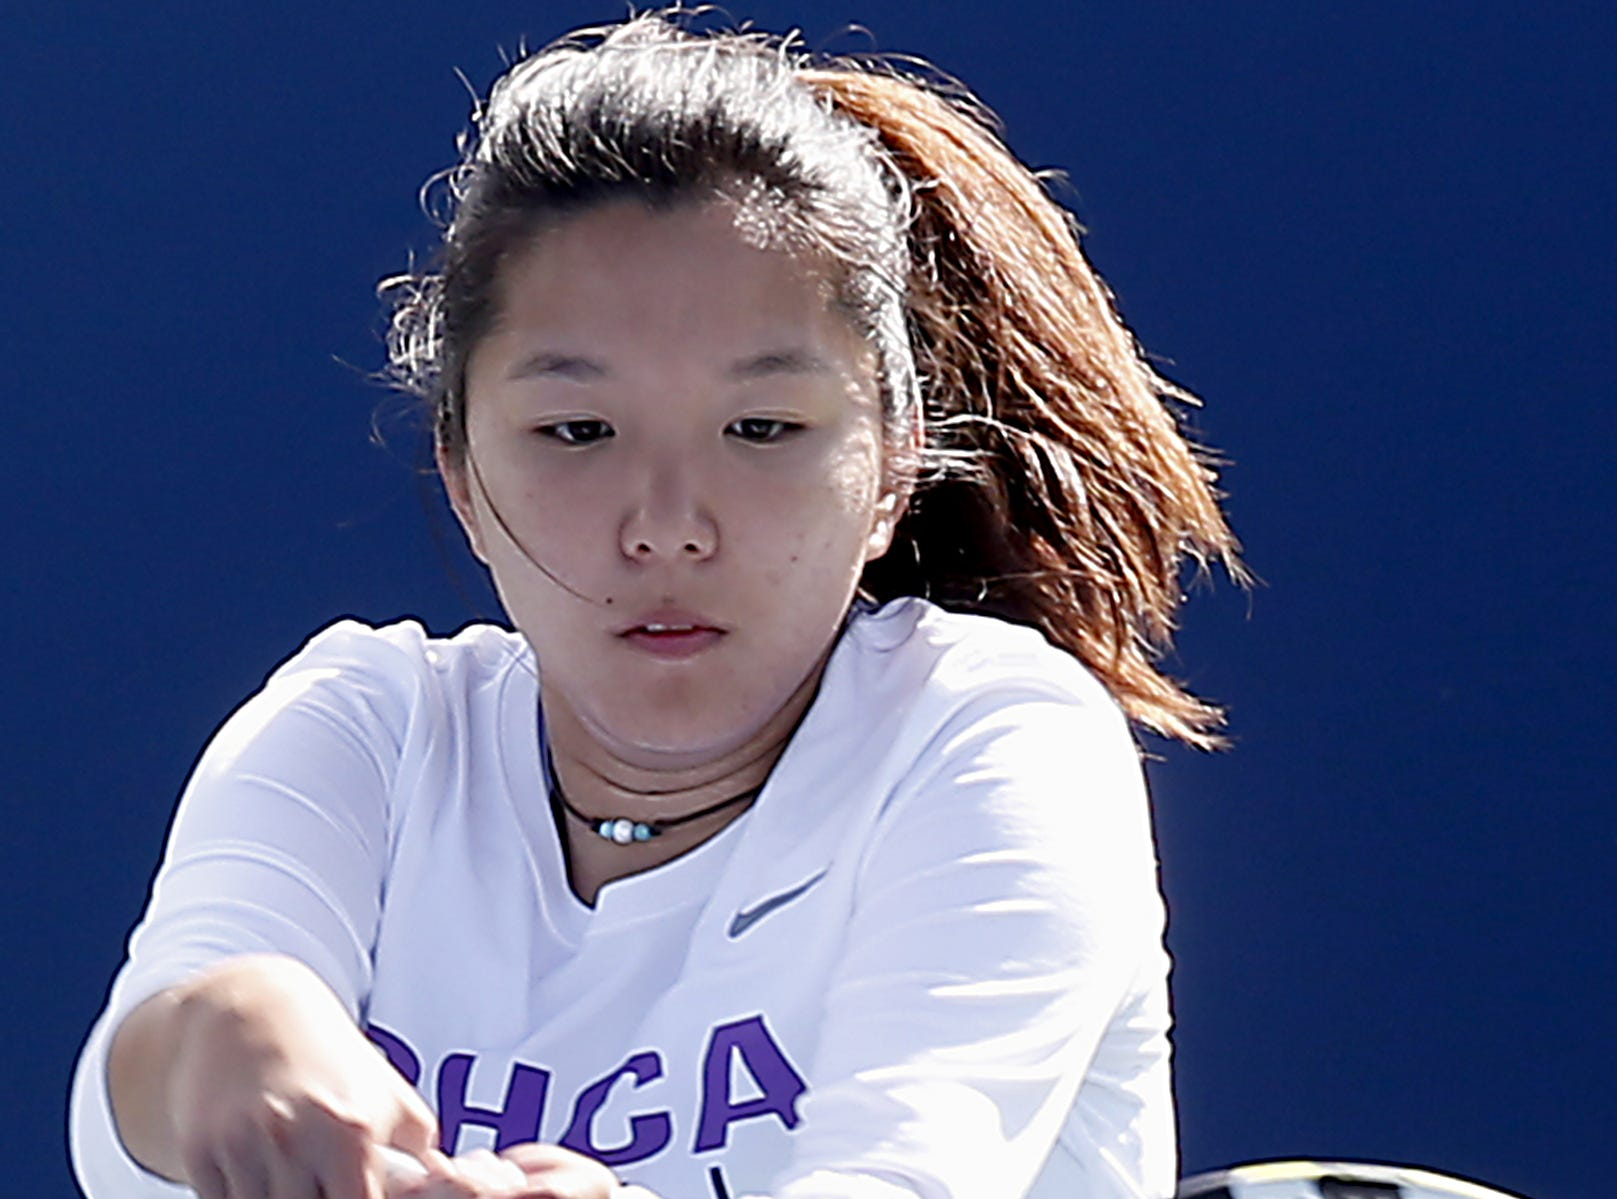 CHCA's Leanna Yuan returns a volley to Wyoming during the SWDAB girls district tennis tournament Div II doubles bracket at the Lindner Family Tennis Center in Mason Thursday, Oct. 11, 2018.